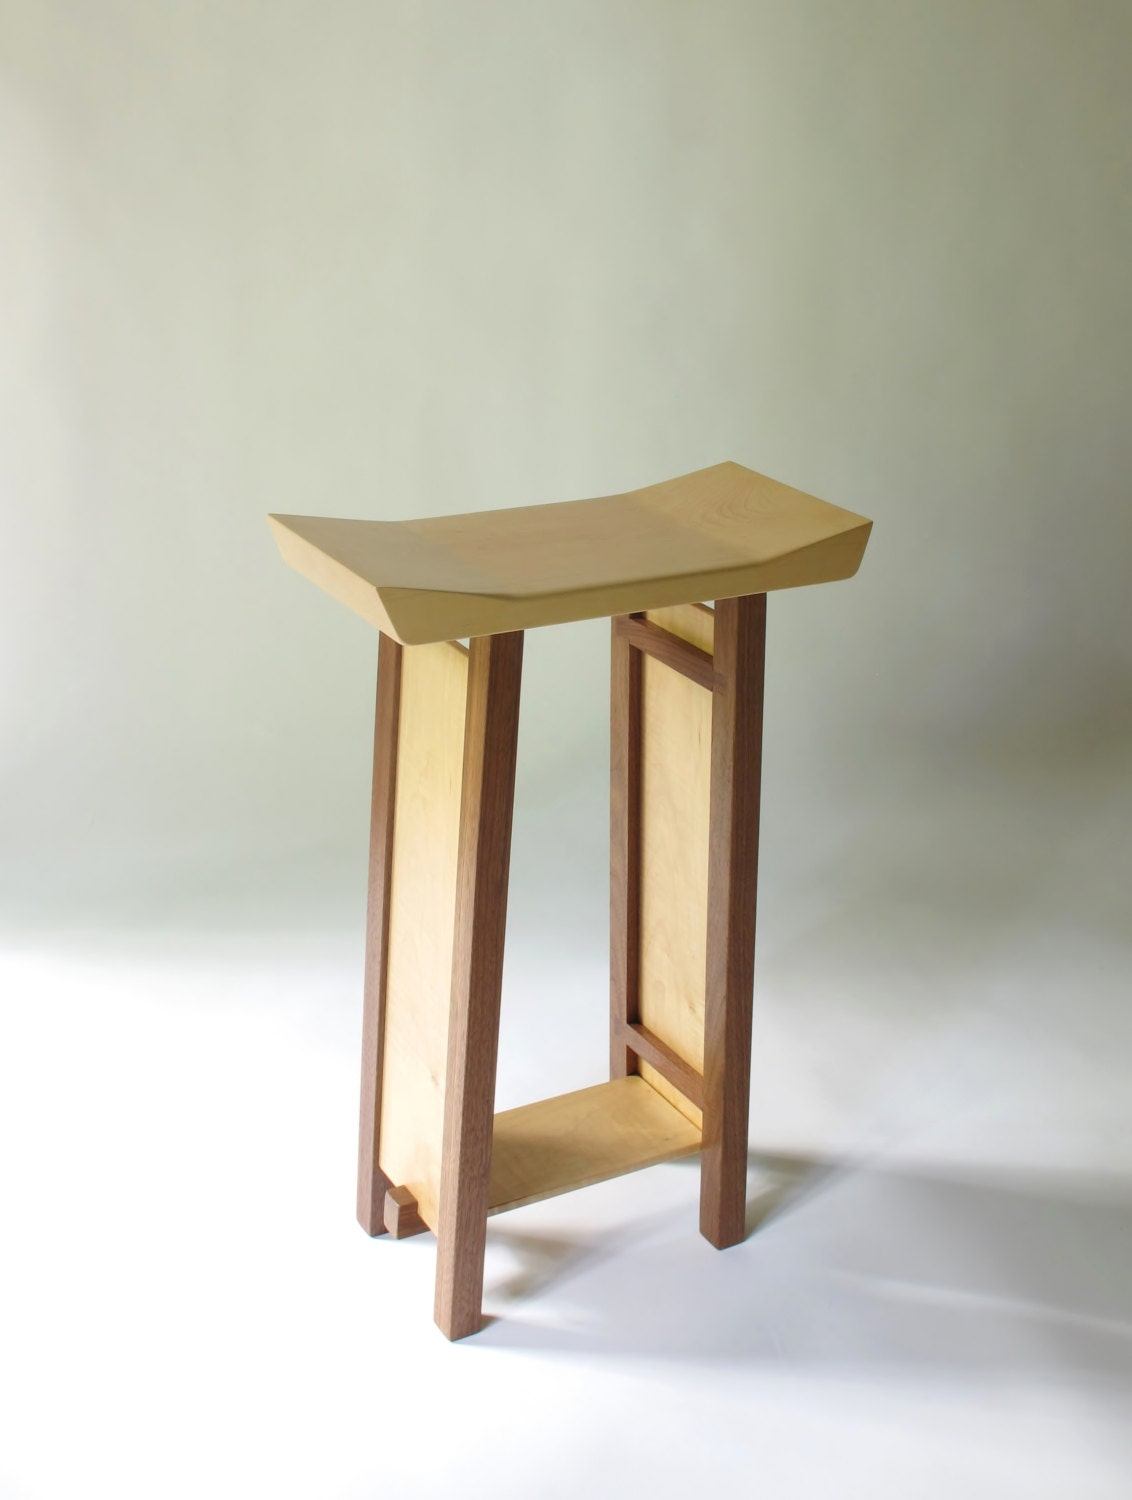 Wooden Furniture Stools ~ Bar stool modern zen wood furniture handmade custom